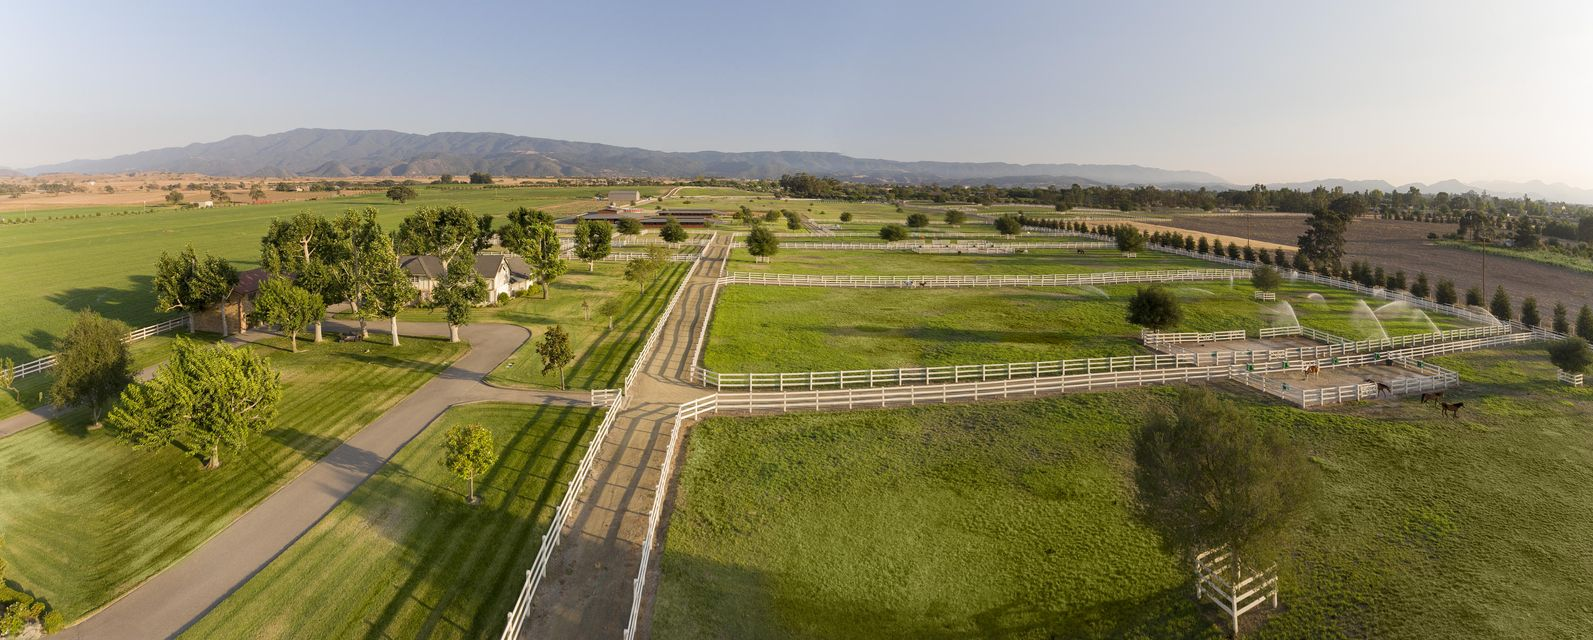 Property photo for 3720-3800 Baseline Ave Santa Ynez, California 93460 - 16-2683